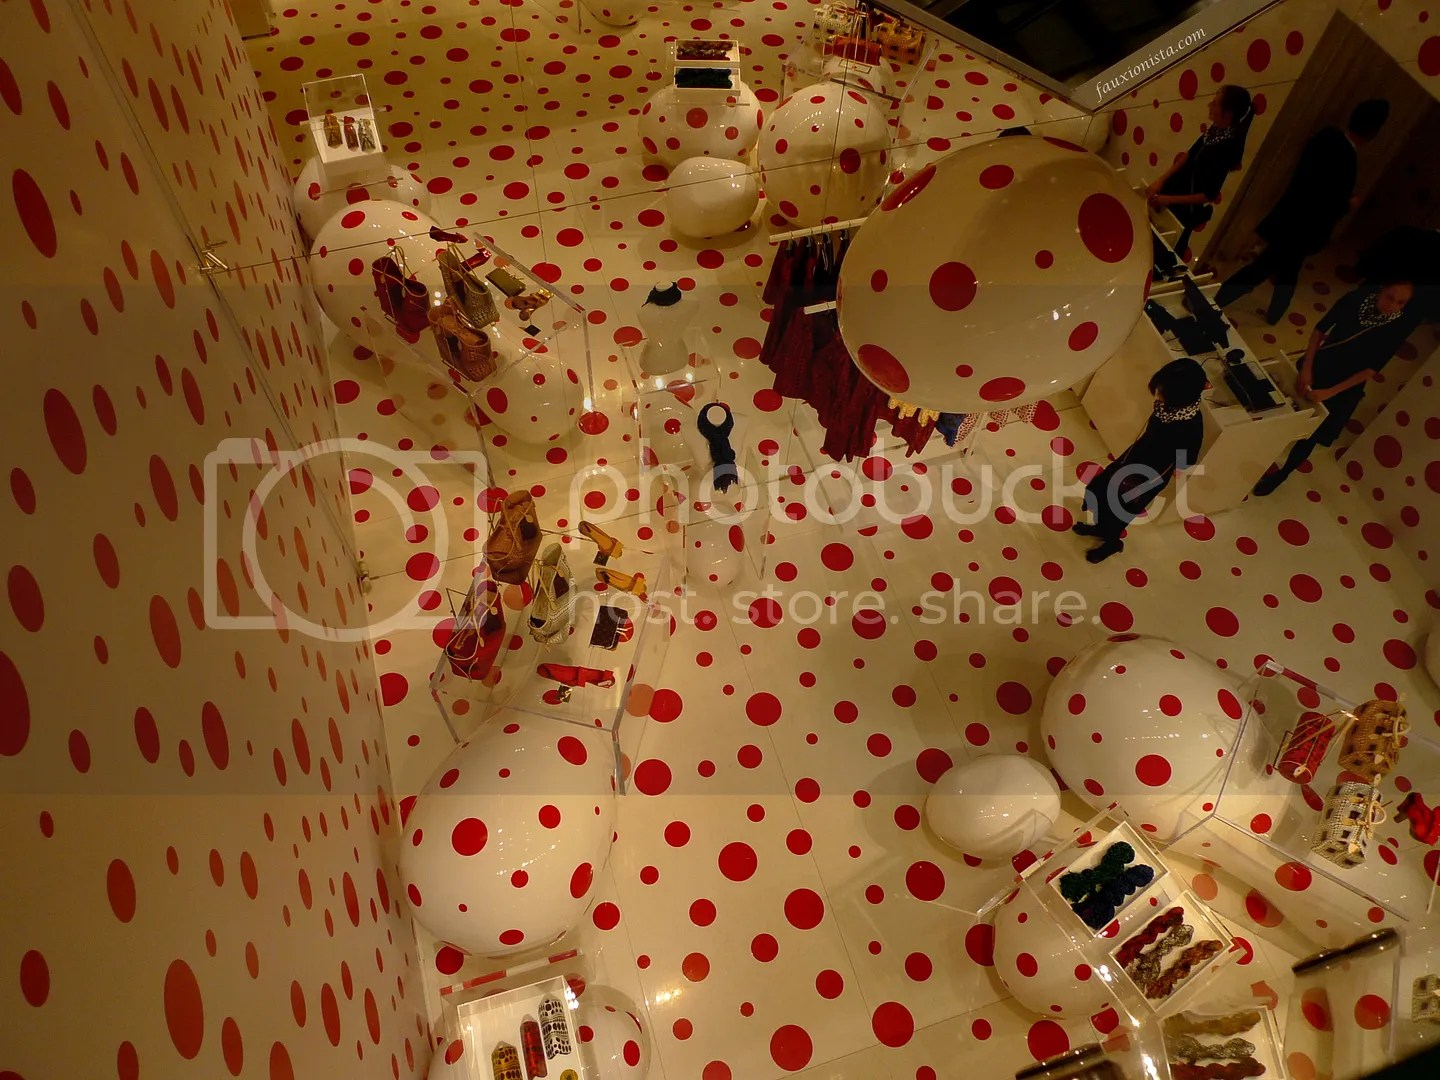 Yayoi Kusama Louis Vuitton Pop-up Store Printemps Paris